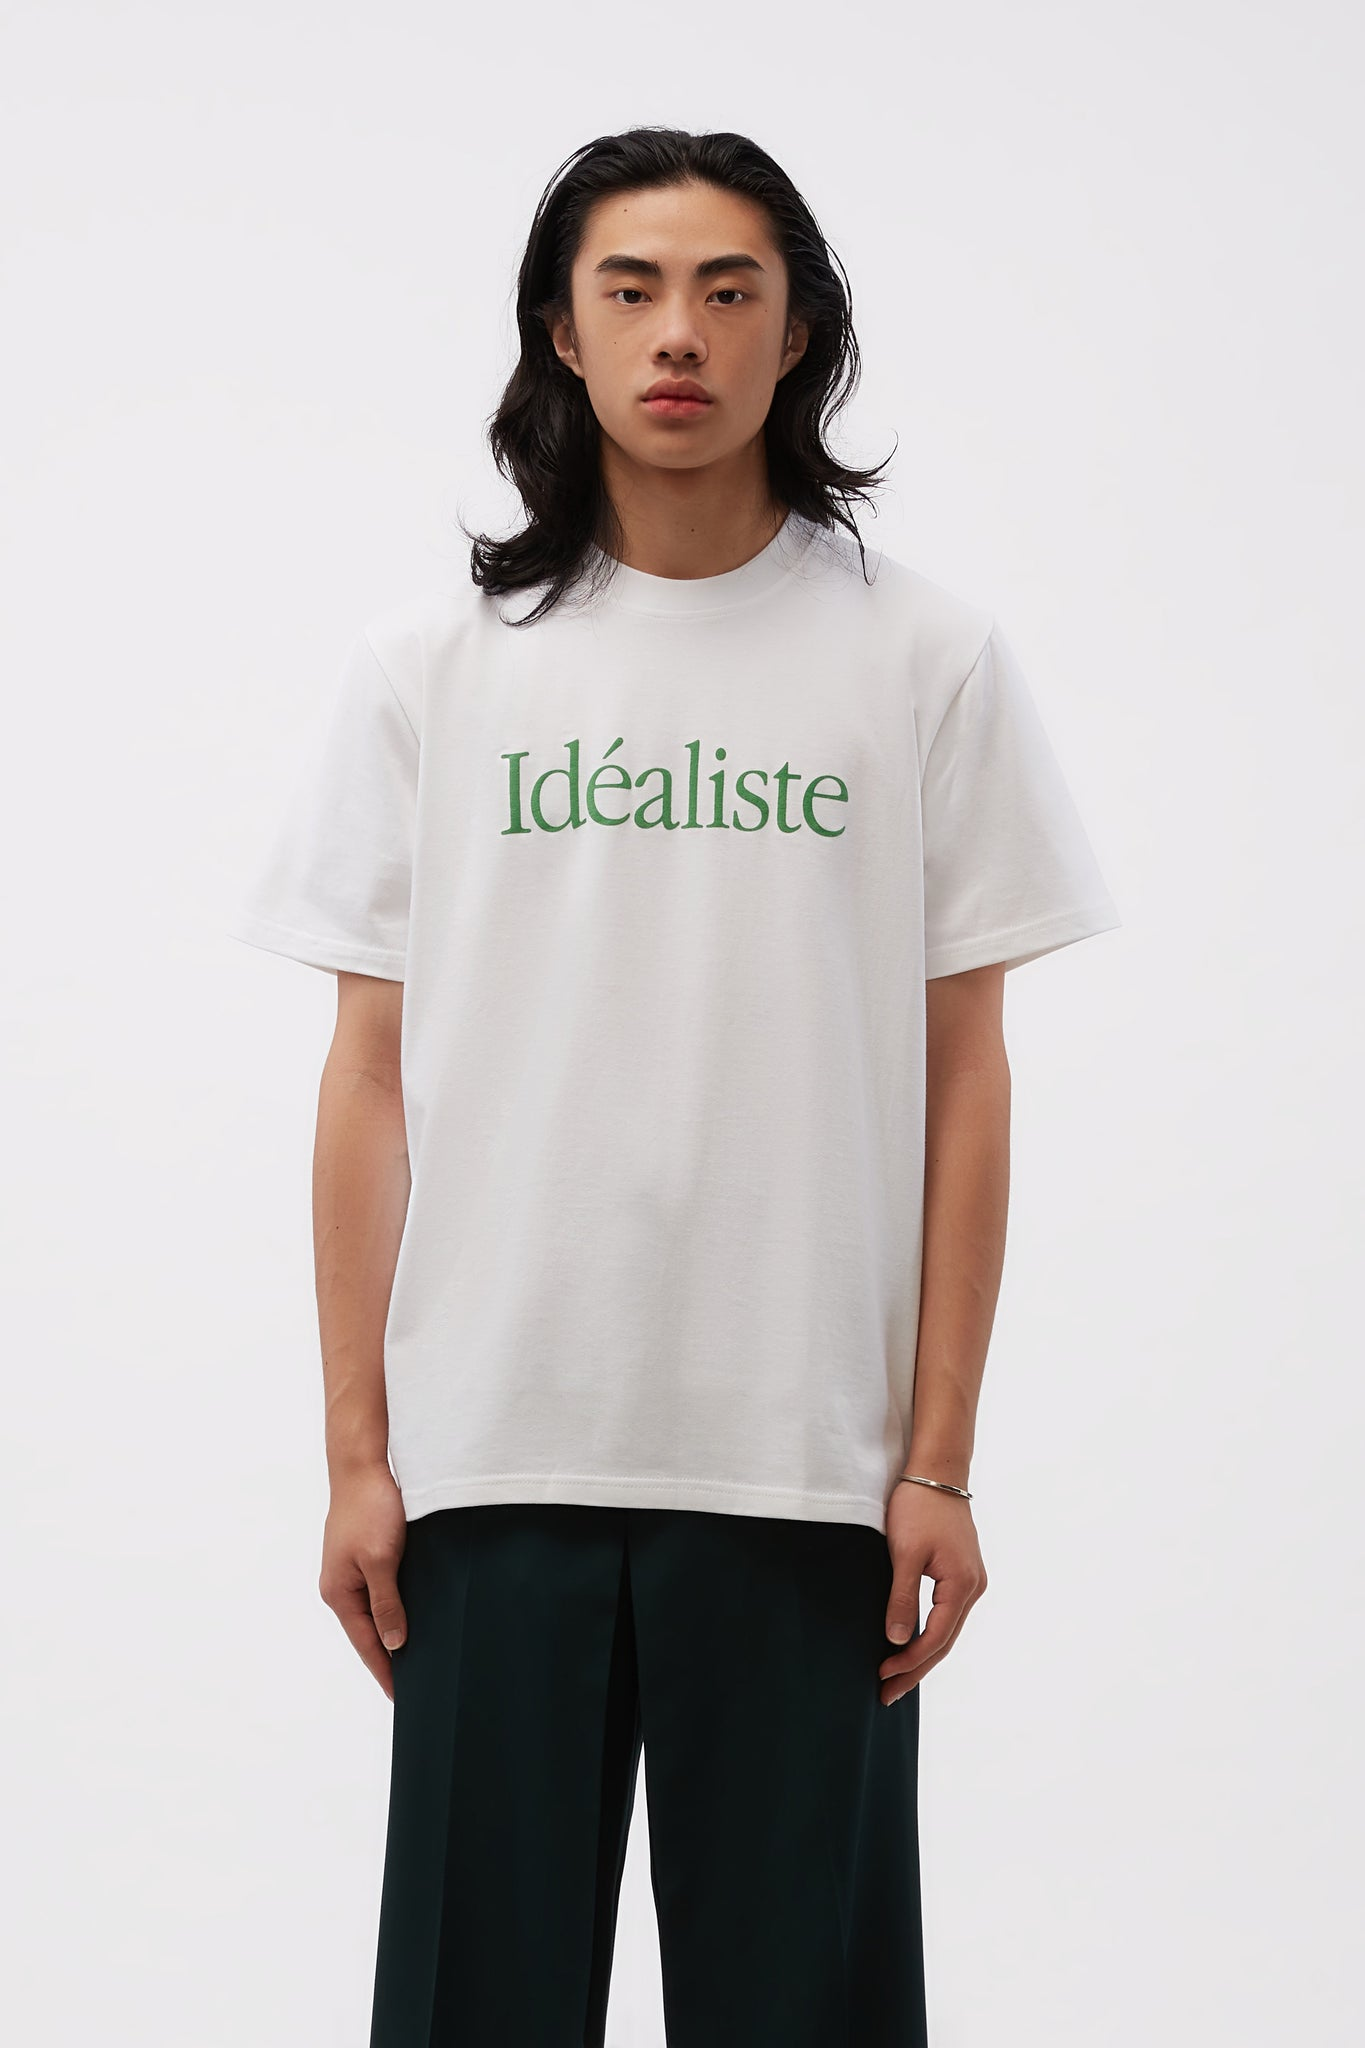 Idealiste Printed T-shirt White